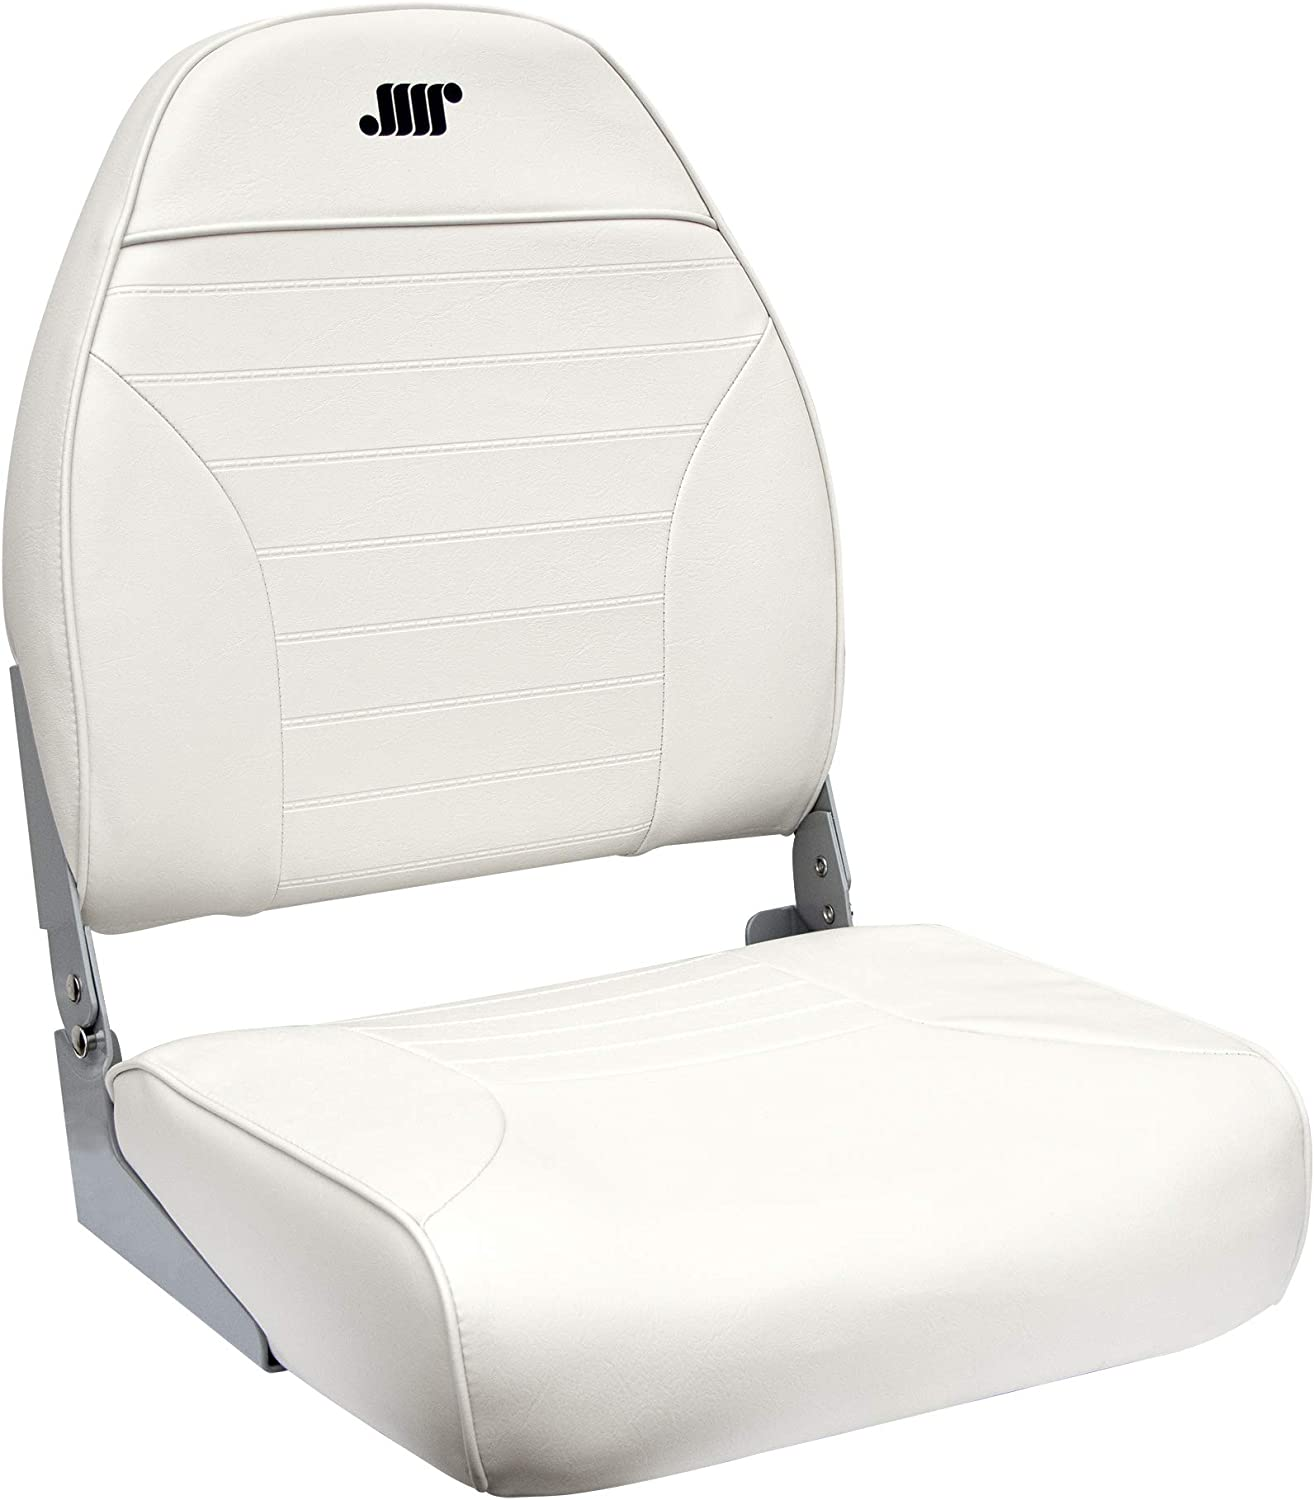 Wise 8WD588PLS-710 Standard High White Seat Back Popular products Outlet SALE